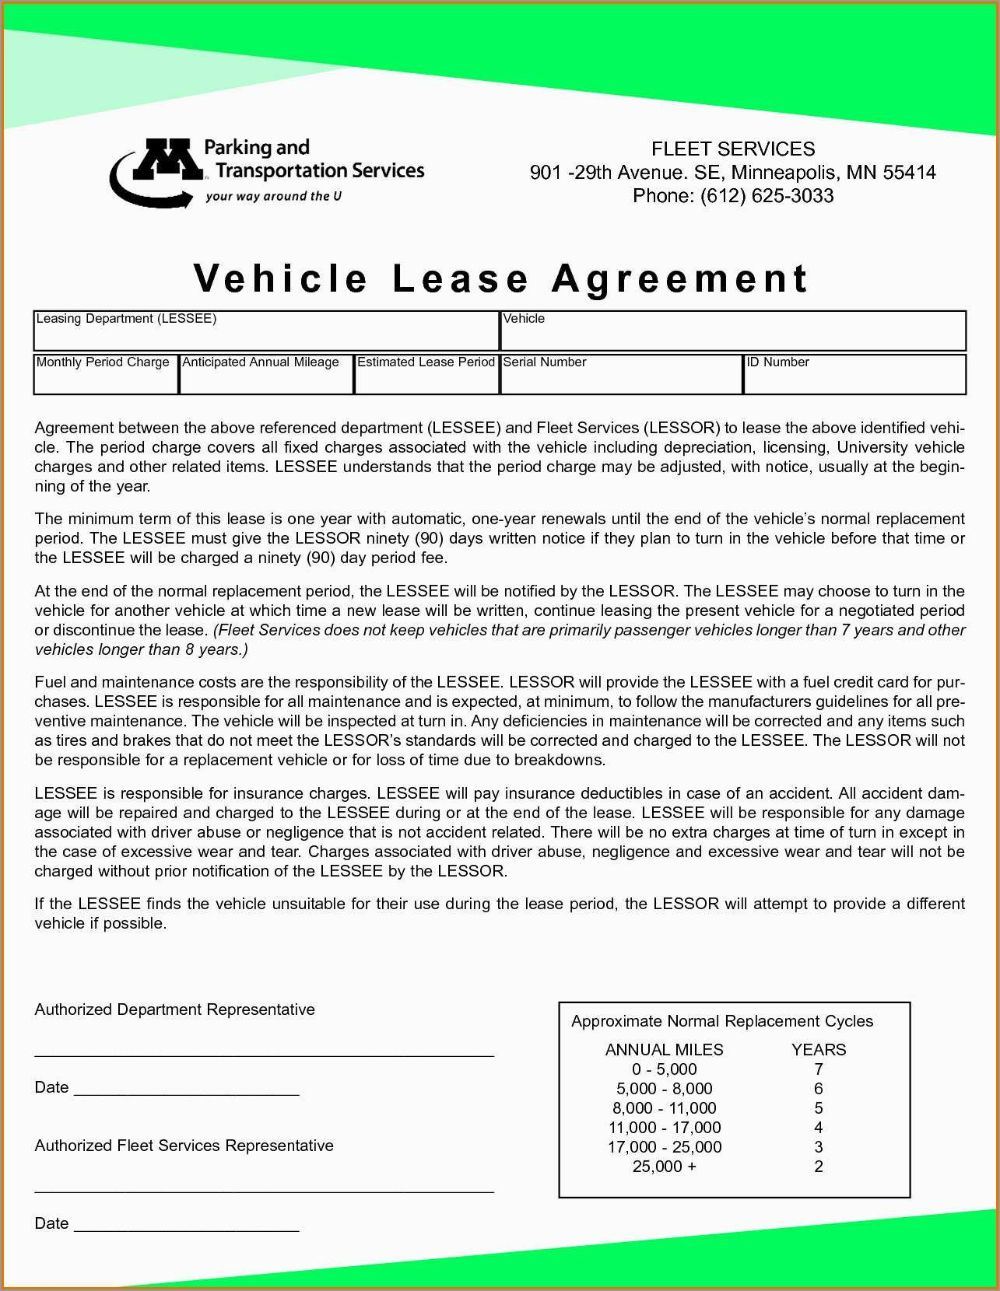 000 Striking Car Rental Agreement Template Idea  Vehicle Rent To Own South Africa SingaporeFull